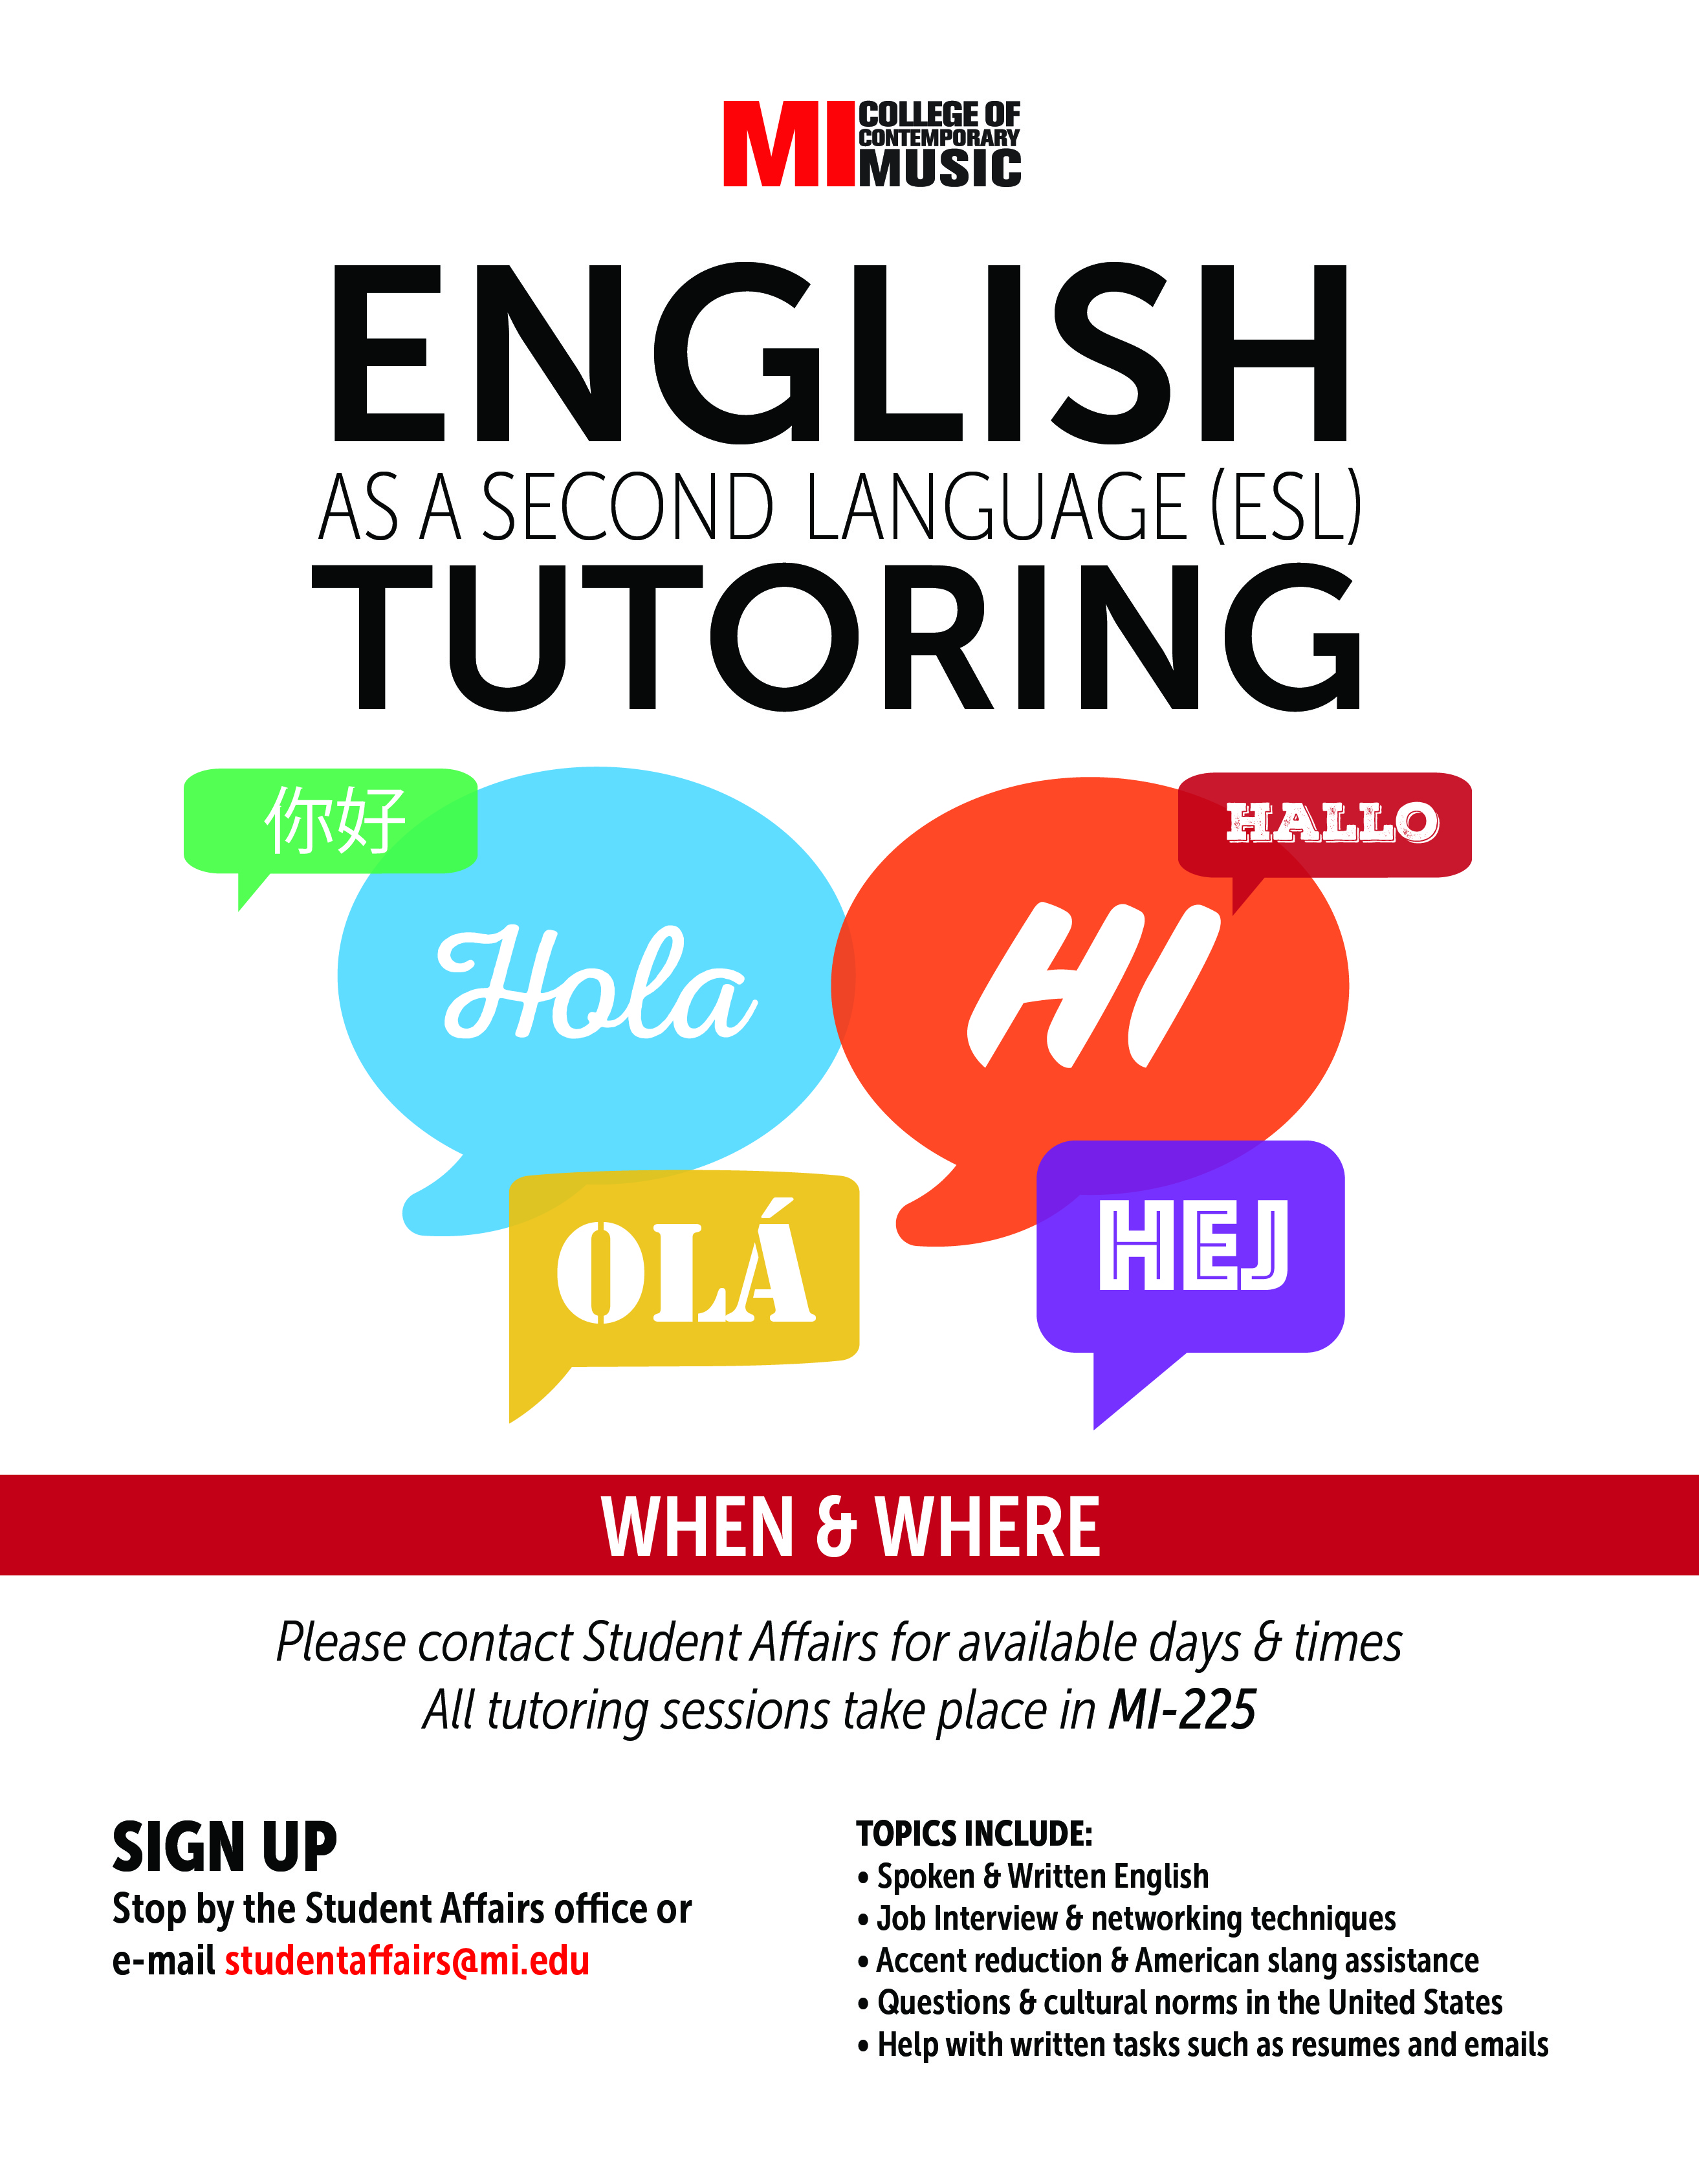 ENGLISH AS A SECOND LANGUAGE (ESL) TUTORING TUESDAY, JULY 25, 11PM – THURSDAY, SEPTEMBER 21, 2017, 12AM